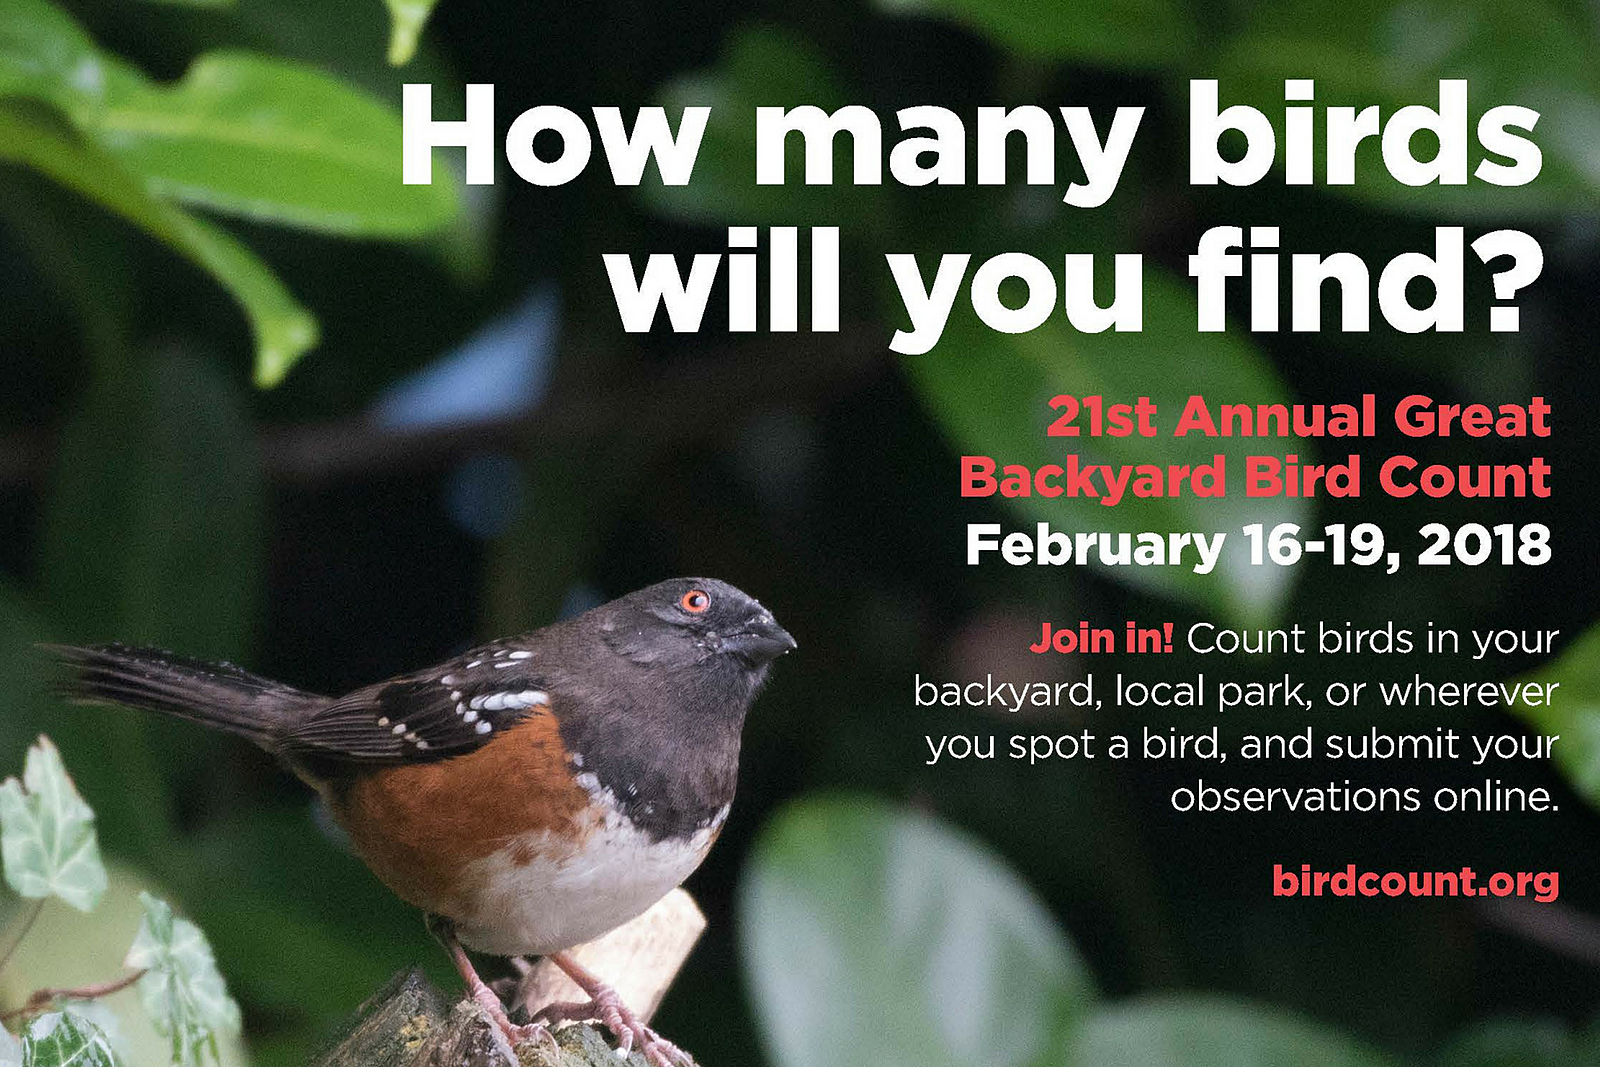 21st Annual Great Backyard Bird Count